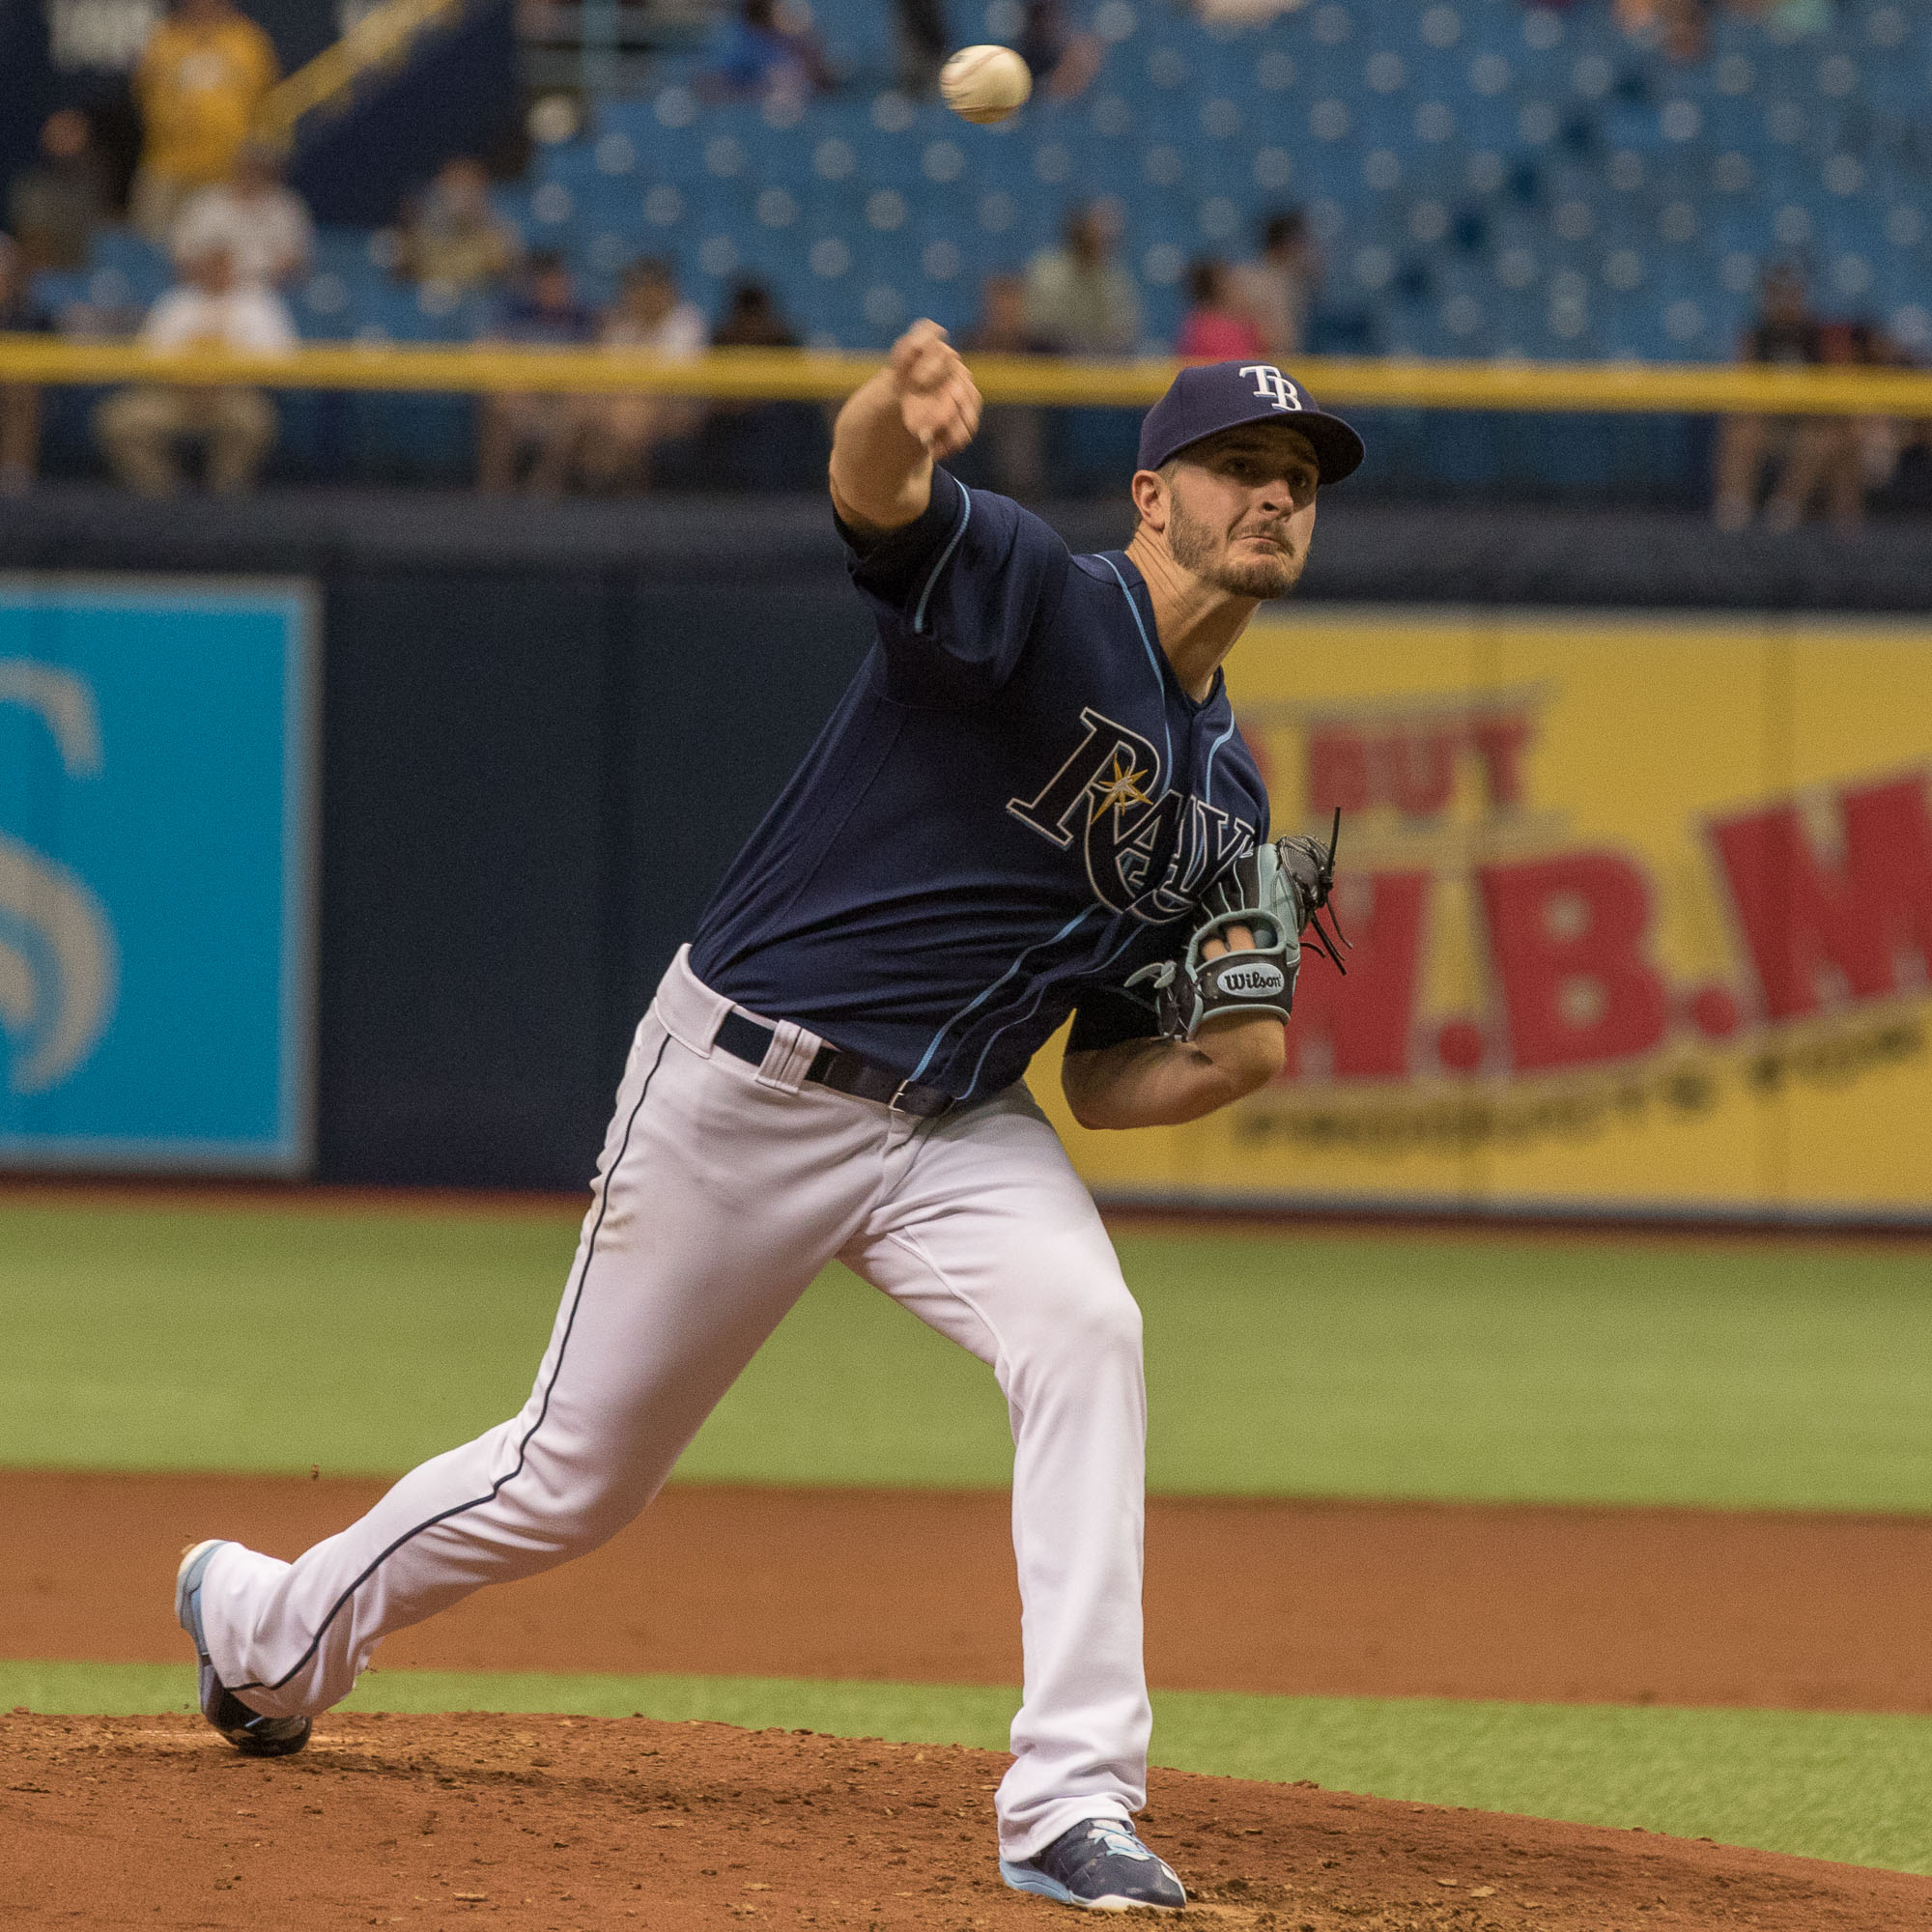 Odorizzi was able to keep the Rays close for awhile../STEVEN MUNCIE